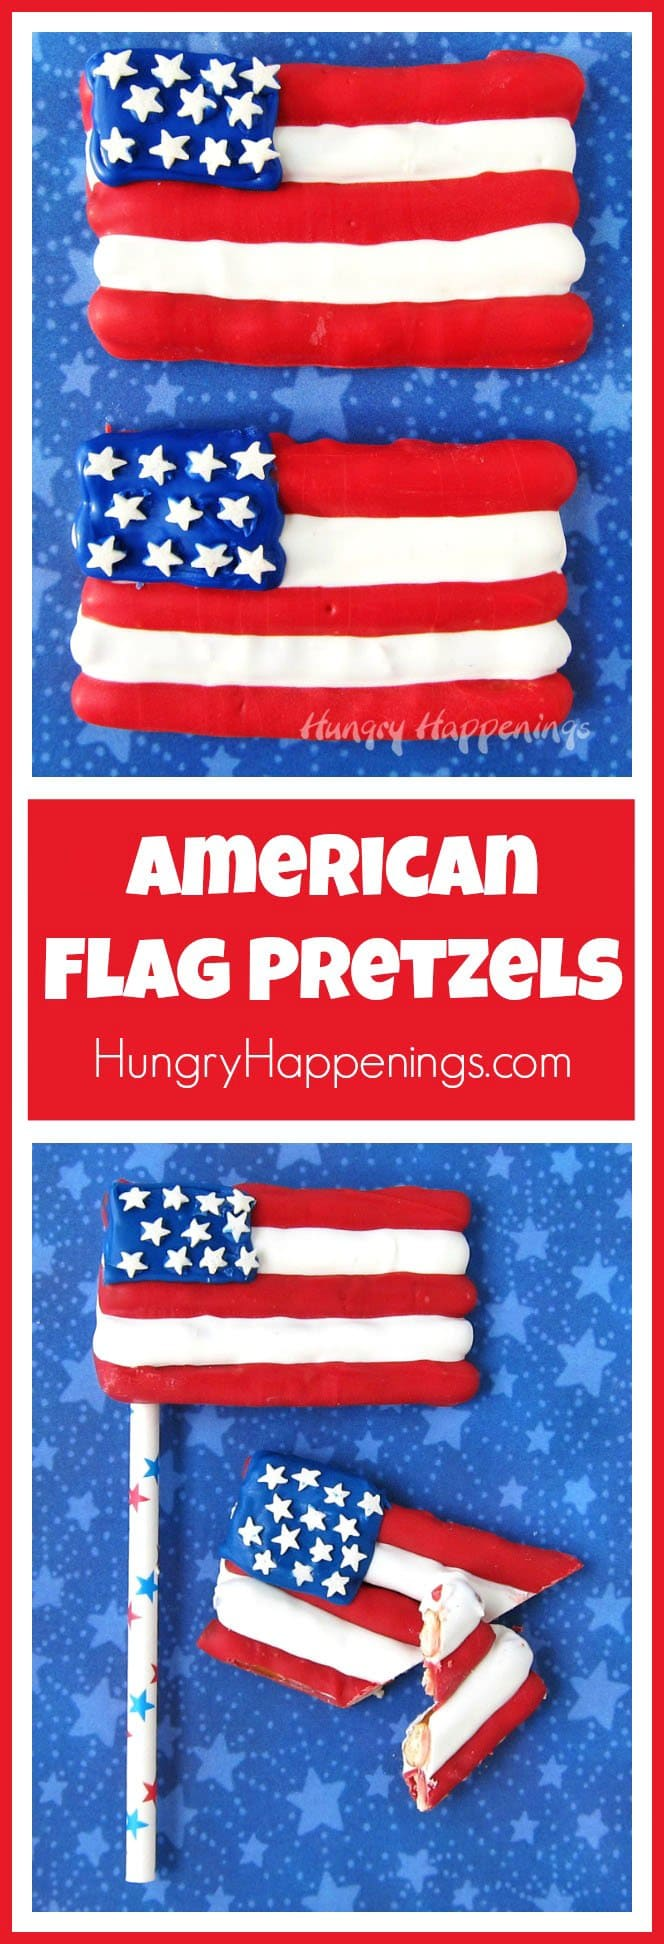 This 4th of July wave American Flag Pretzels at your party. These sweet and salty treats will be fun for the whole family.